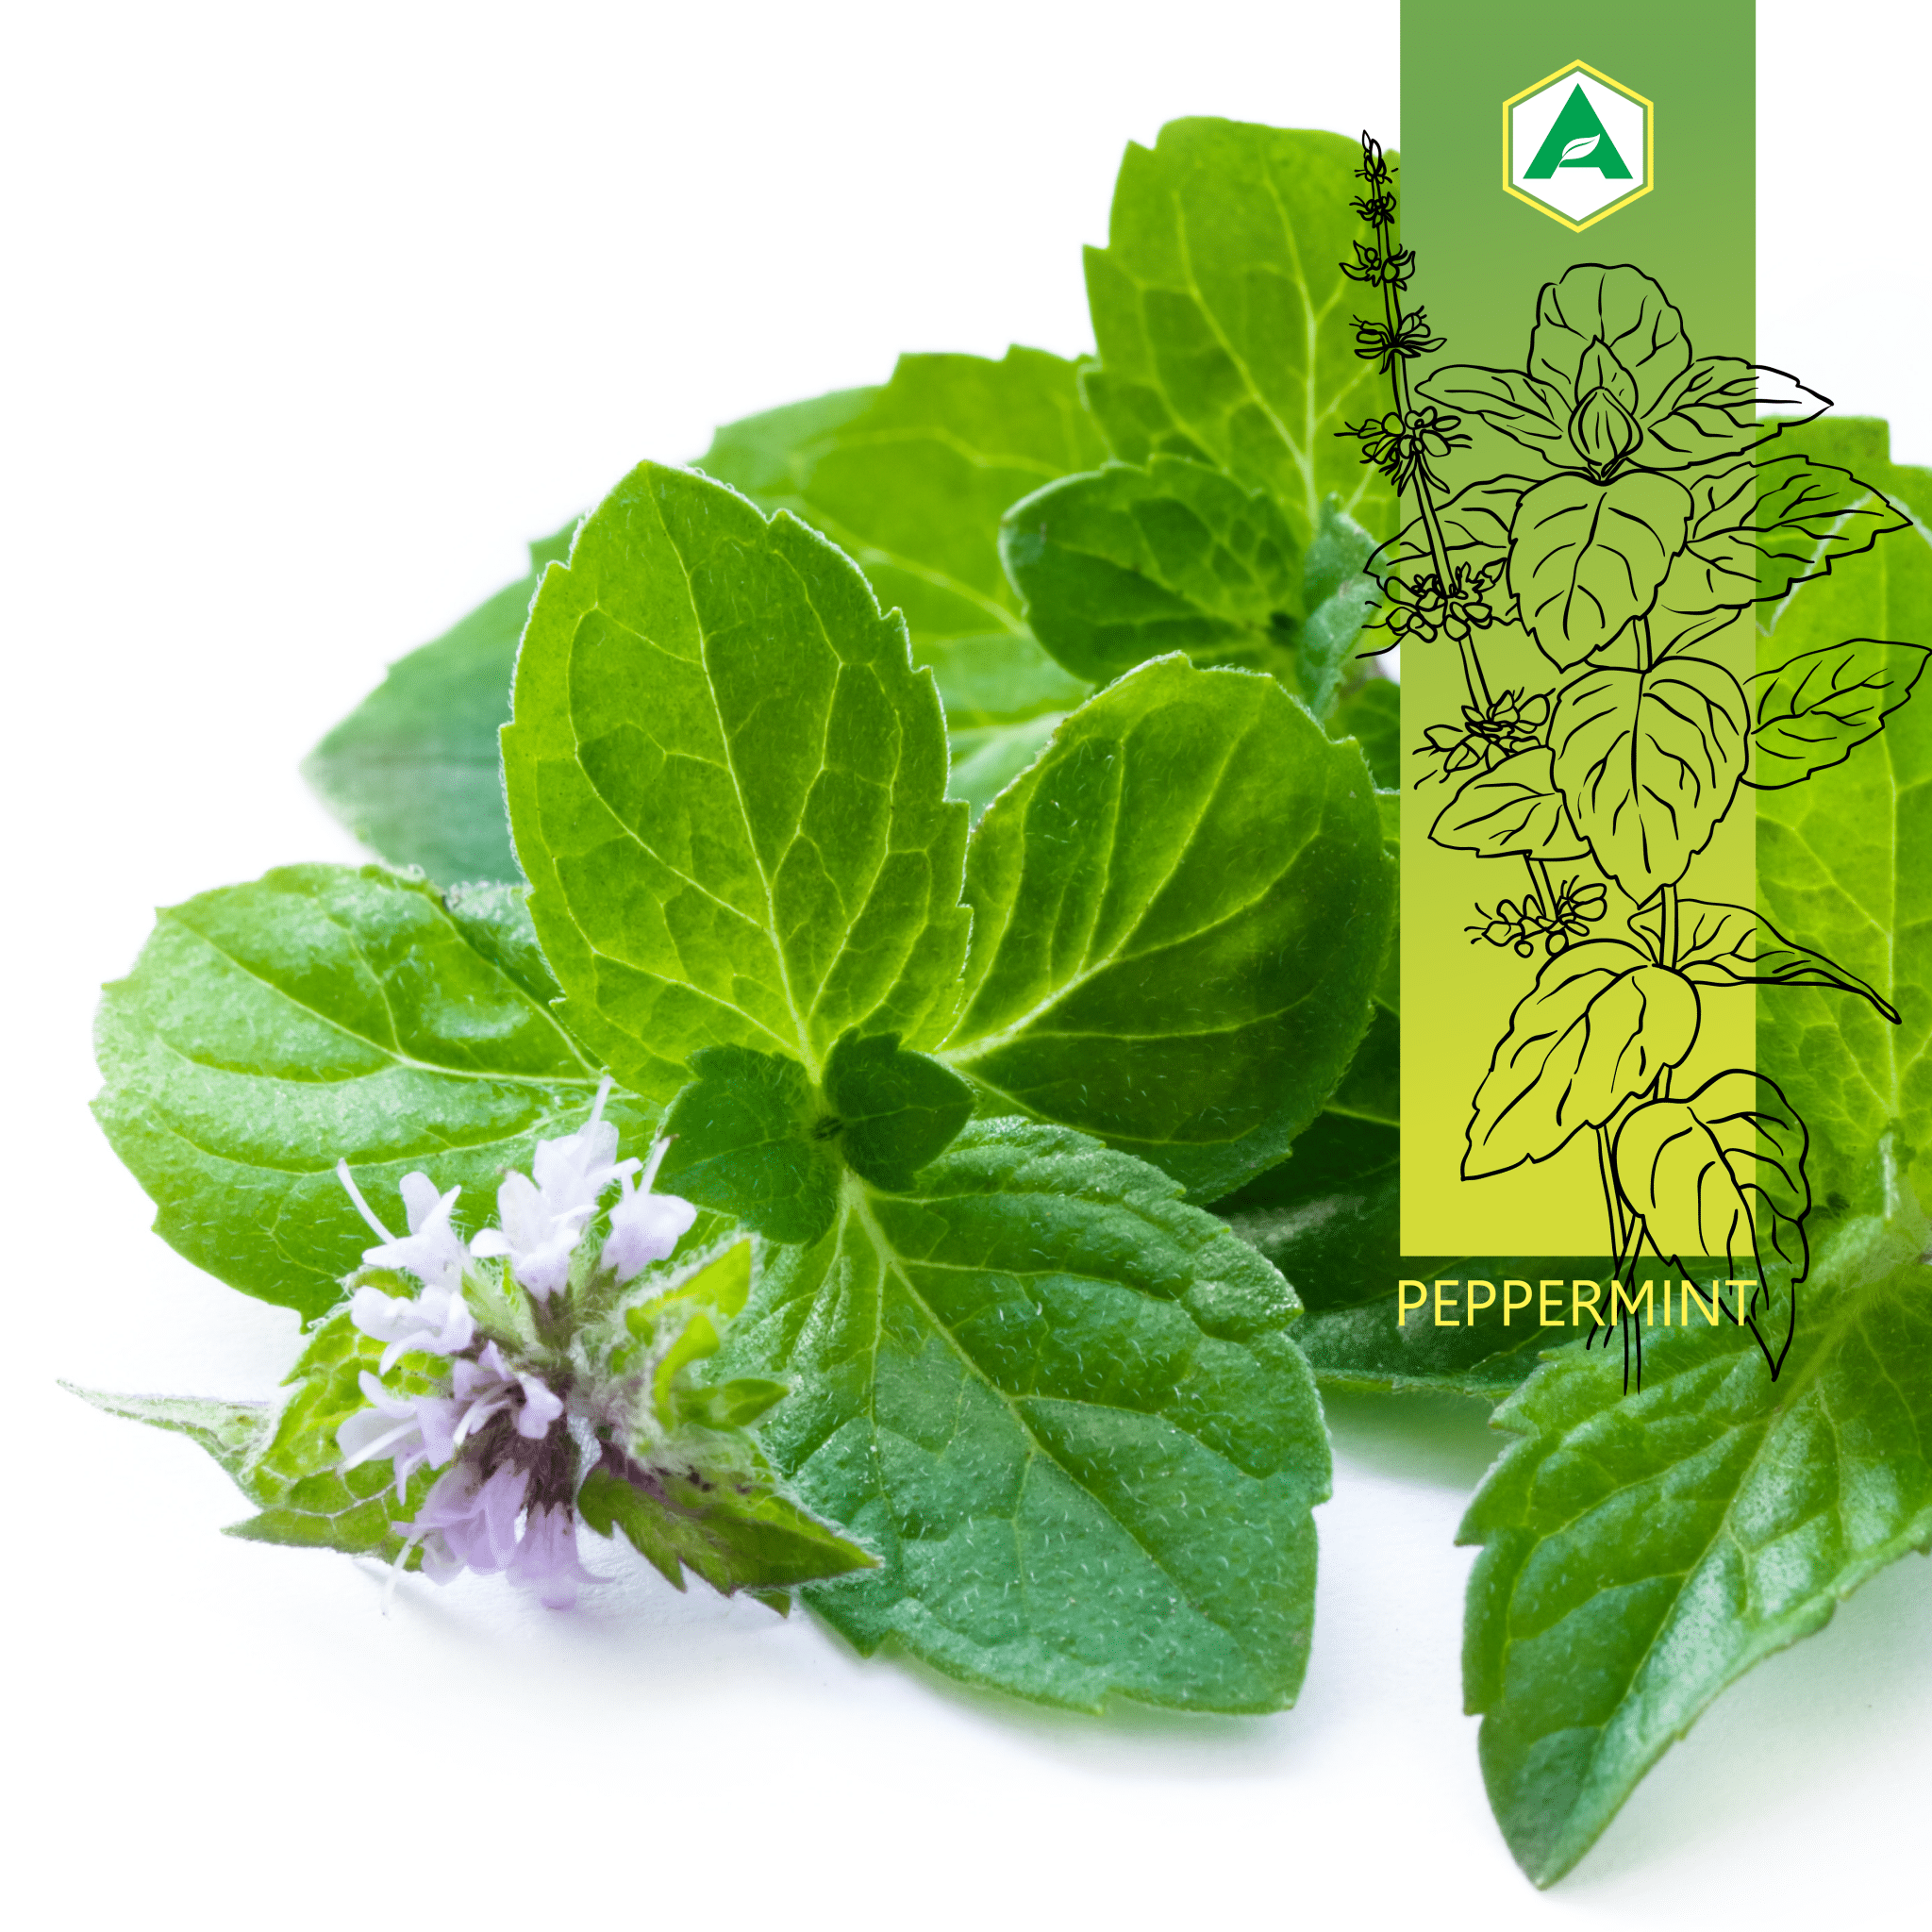 Peppermint Leaf: What is it and what health benefits does it offer?